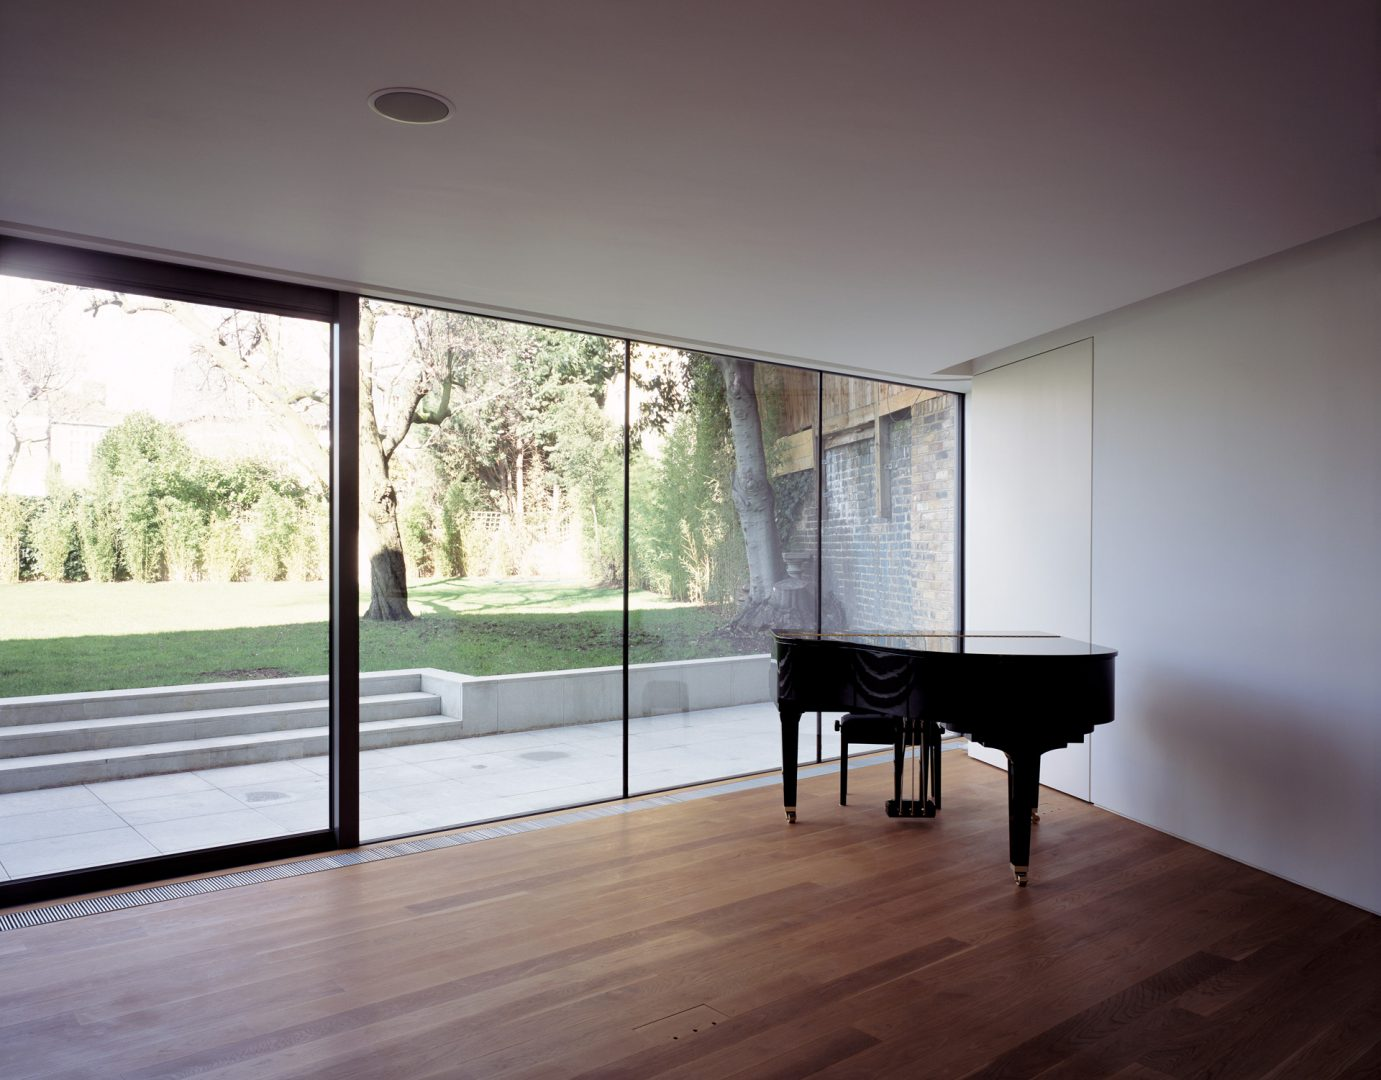 Main reception room at the Long House London. A multi-award winning contemporary house by Keith Williams Architects.